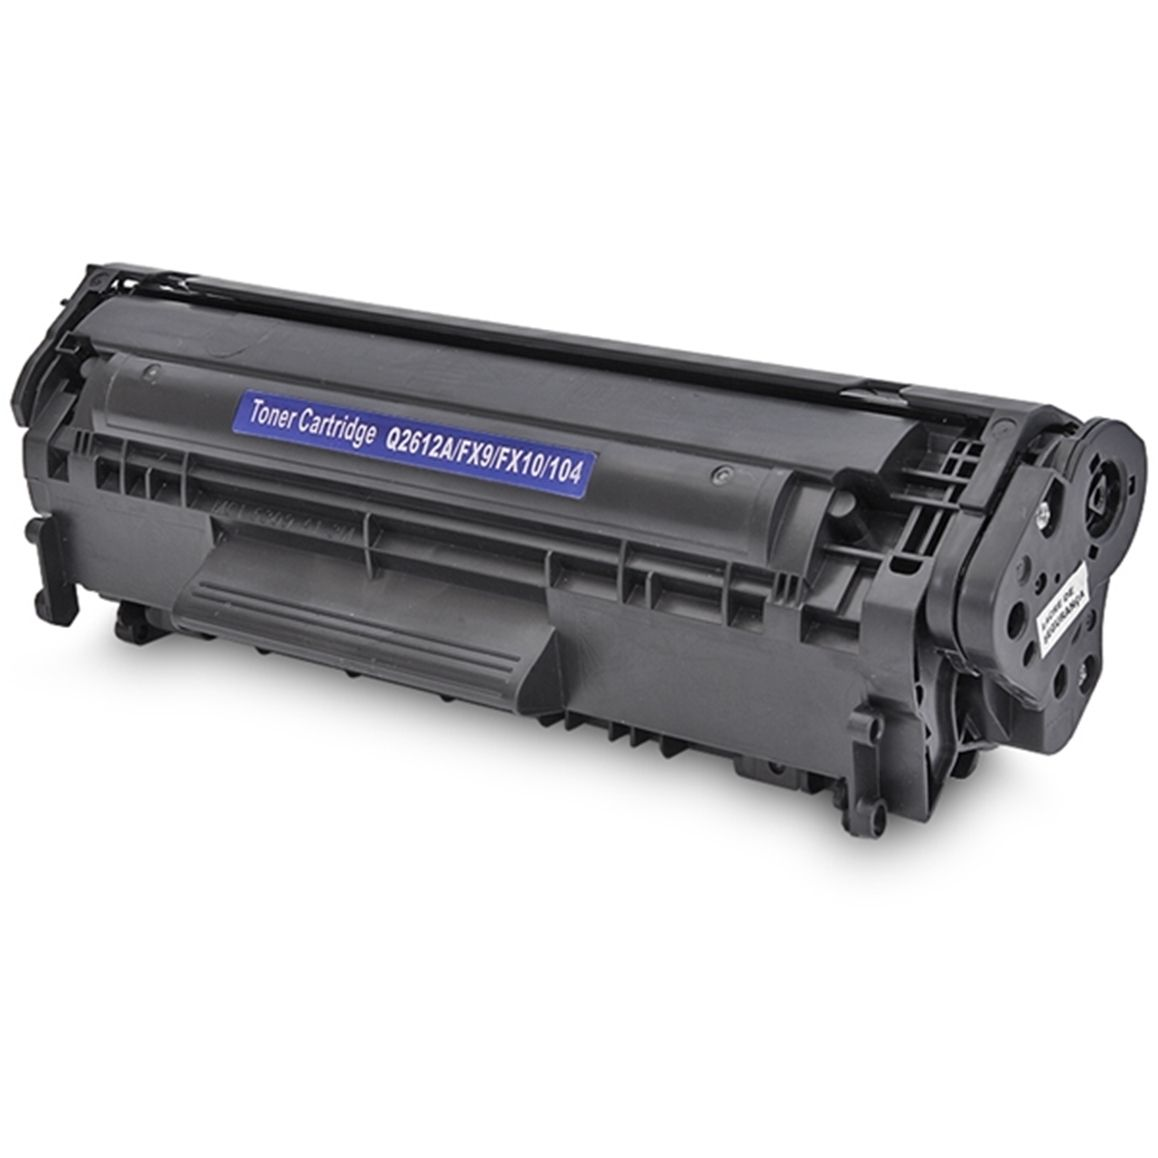 TONER COMPATIVEL HP Q2612A 1010 - IMPORTADO